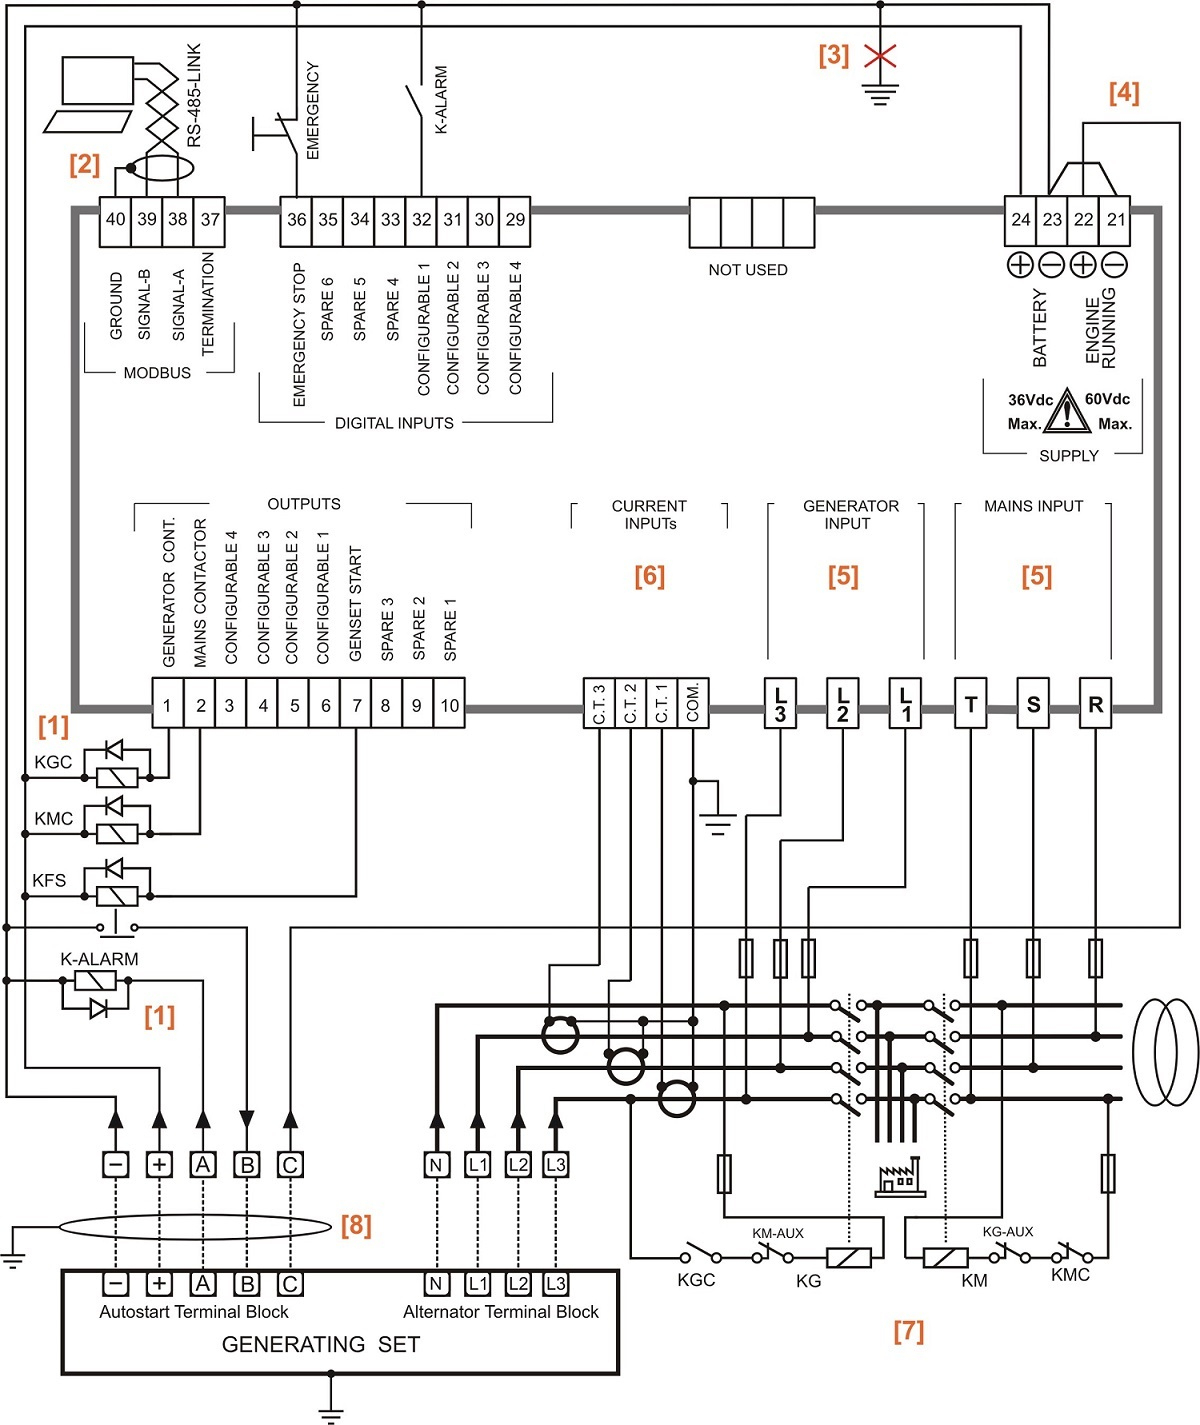 Automatic Transfer Switch Schematic Diagram - Wiring Diagrams Lose - Generator Automatic Transfer Switch Wiring Diagram